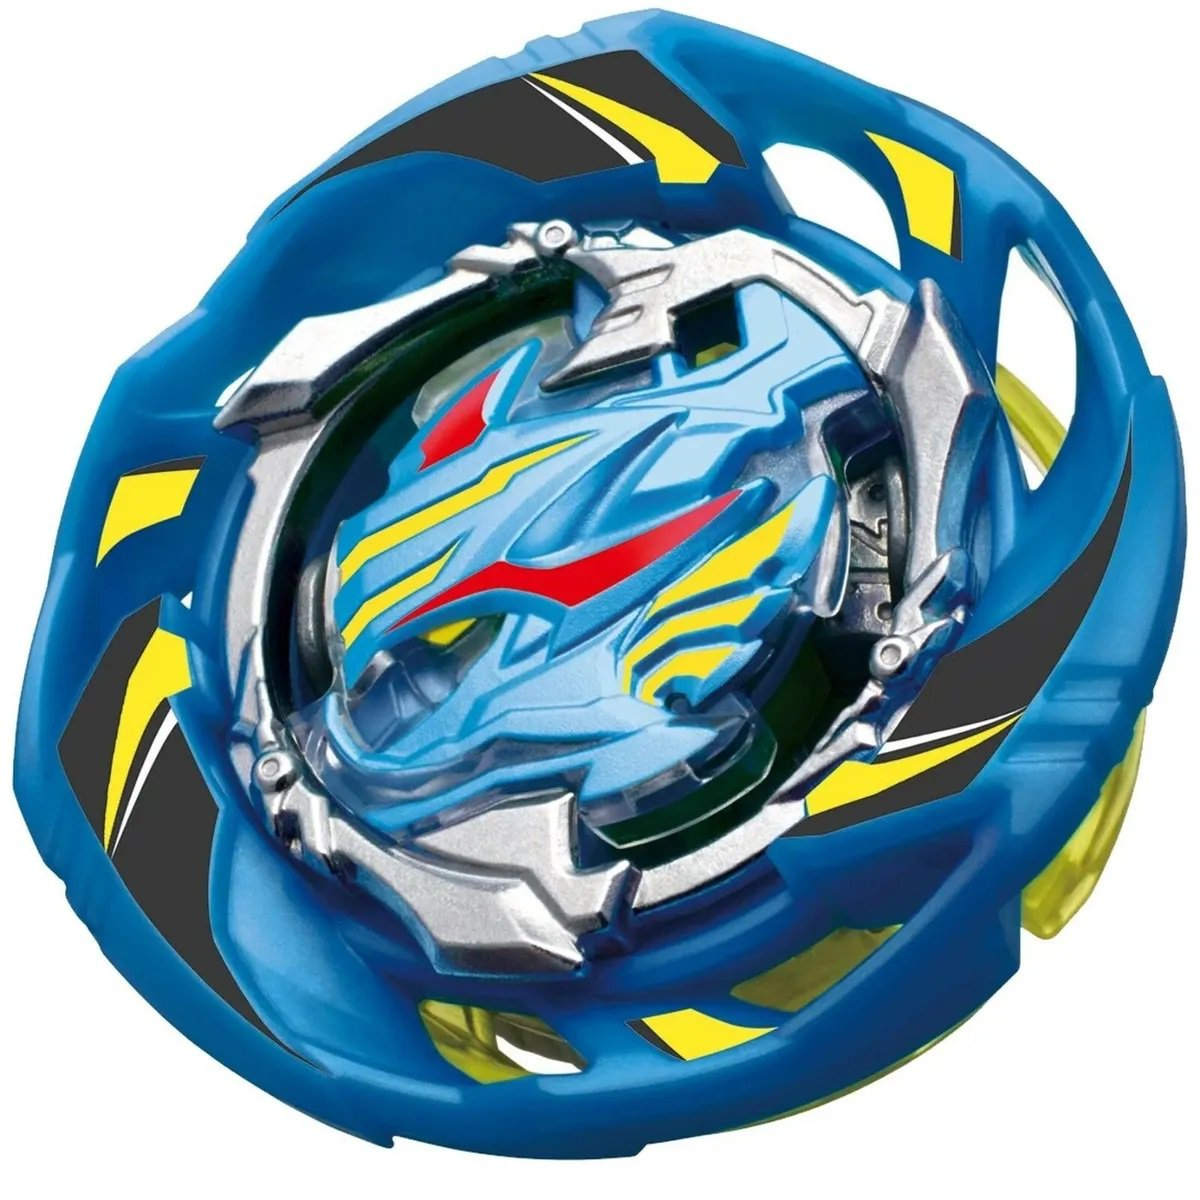 BeyBlade B-130 Air Knight Flame Action Gyro Spinning Top Toys